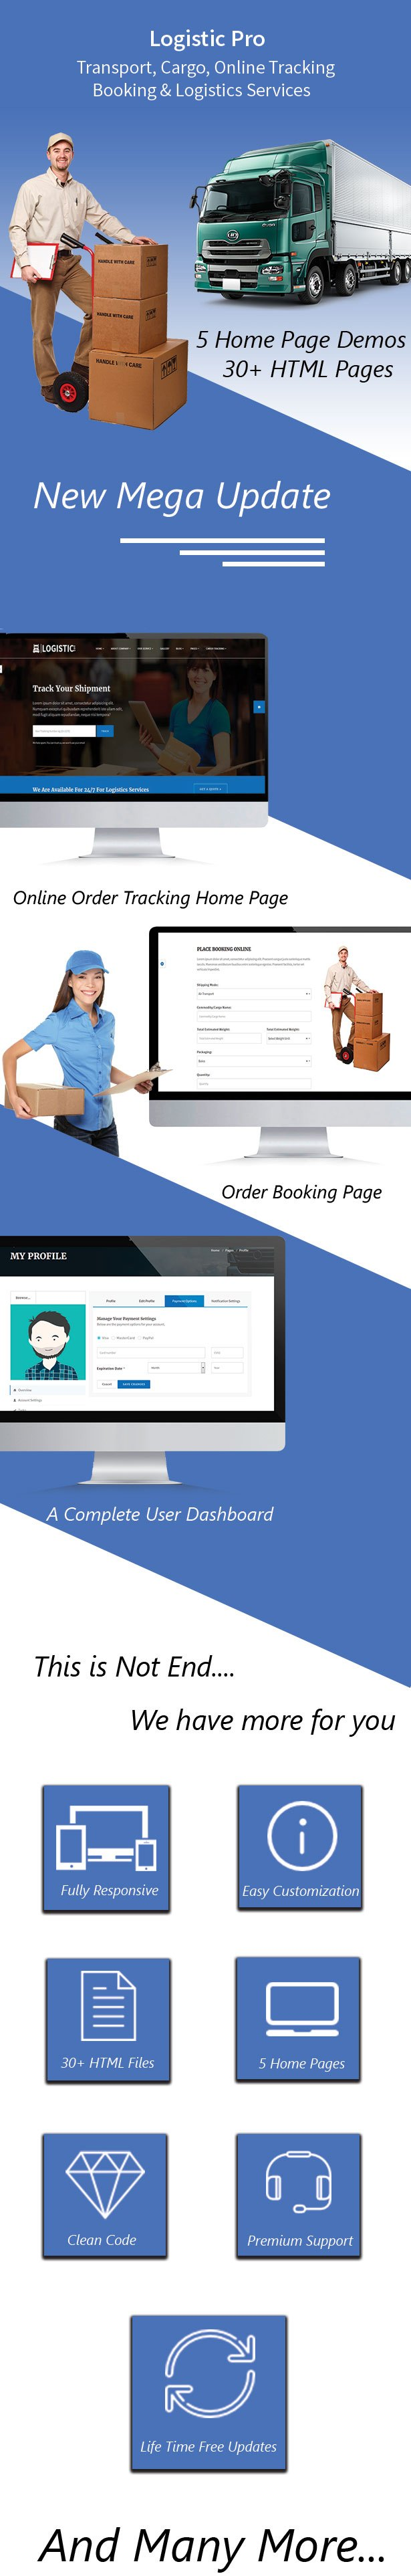 Logistic Pro - Transport - Cargo - Online Tracking - Booking